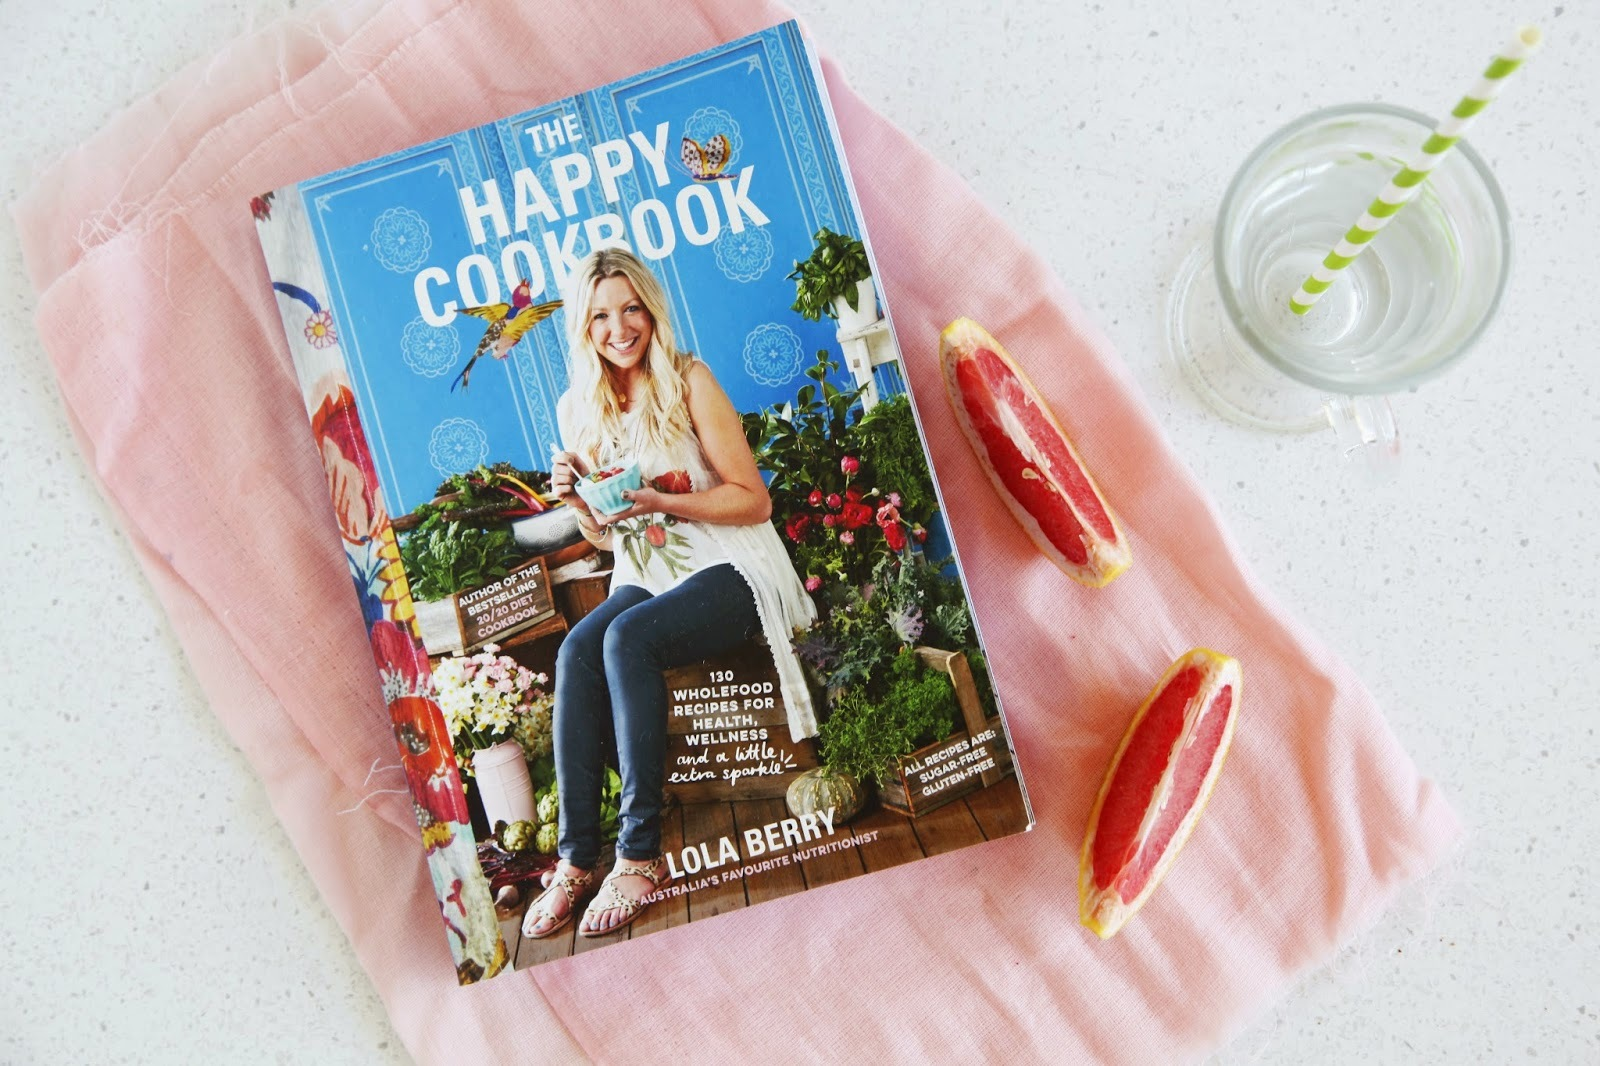 A Cookbook Review: The Happy Cookbook by Lola Berry